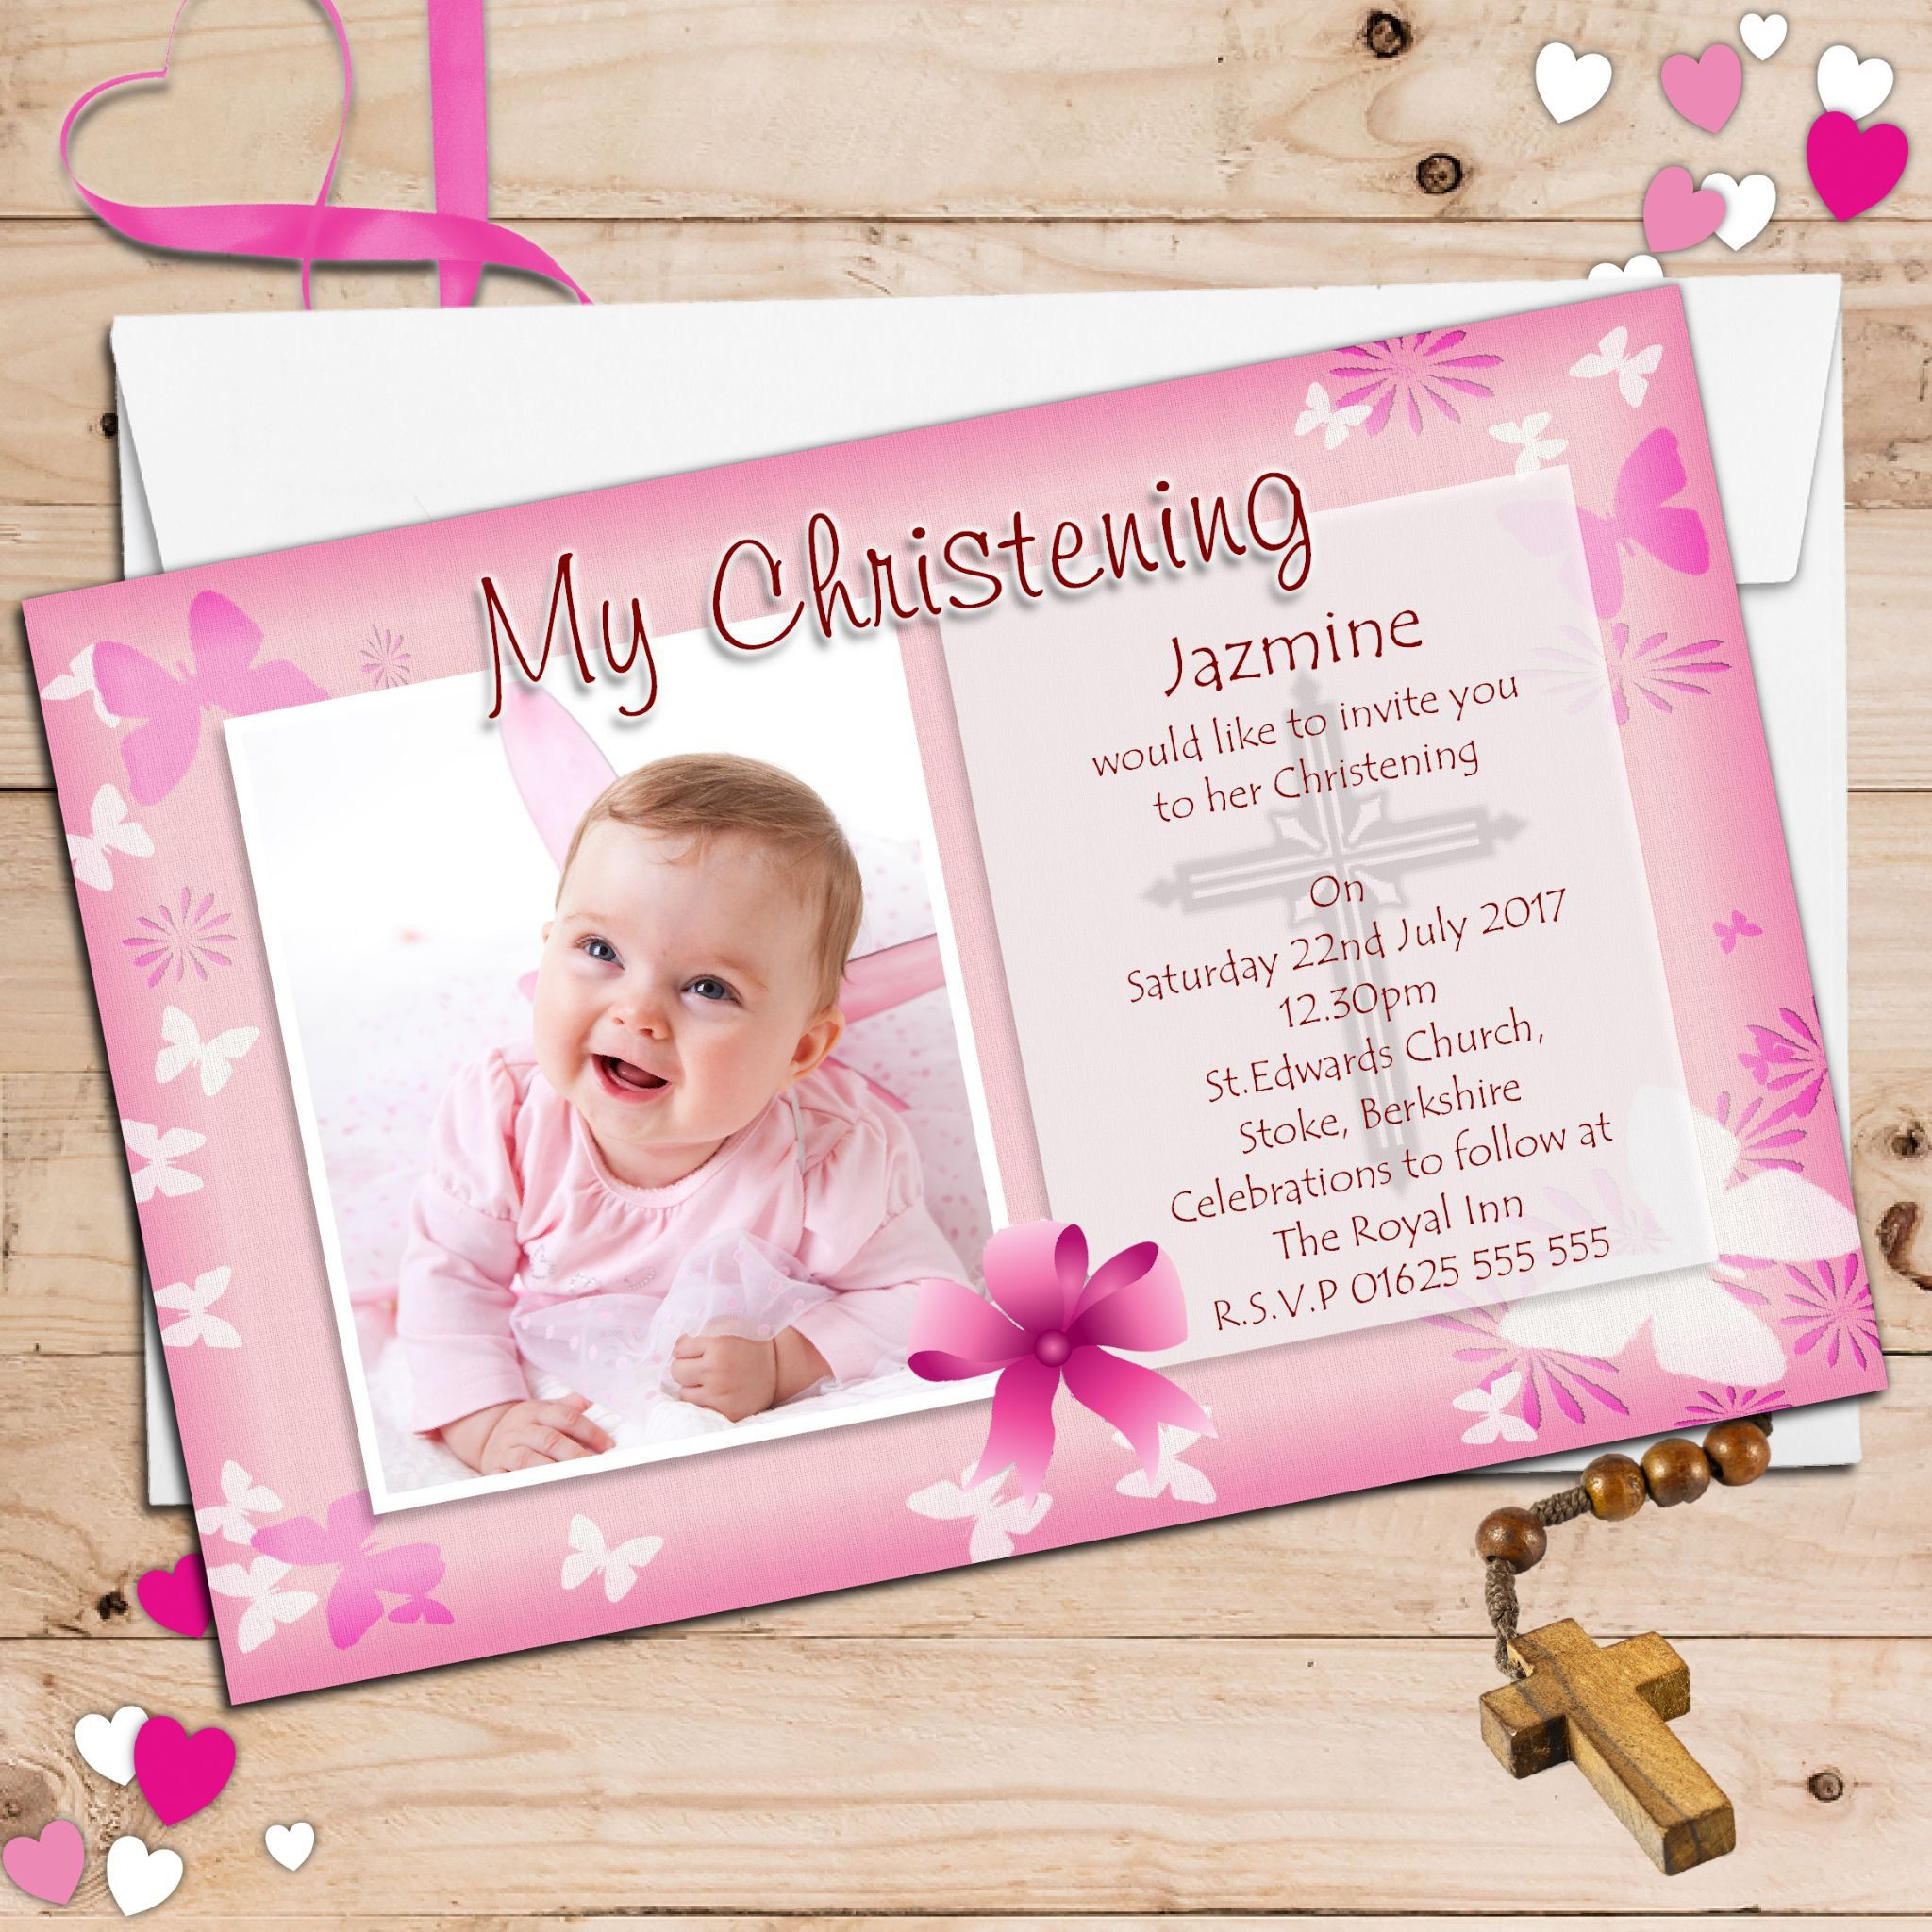 Baptism invitation card free download baptism invitations invitation card for christening invitation card for christening blank background superb invitation superb invitation stopboris Gallery